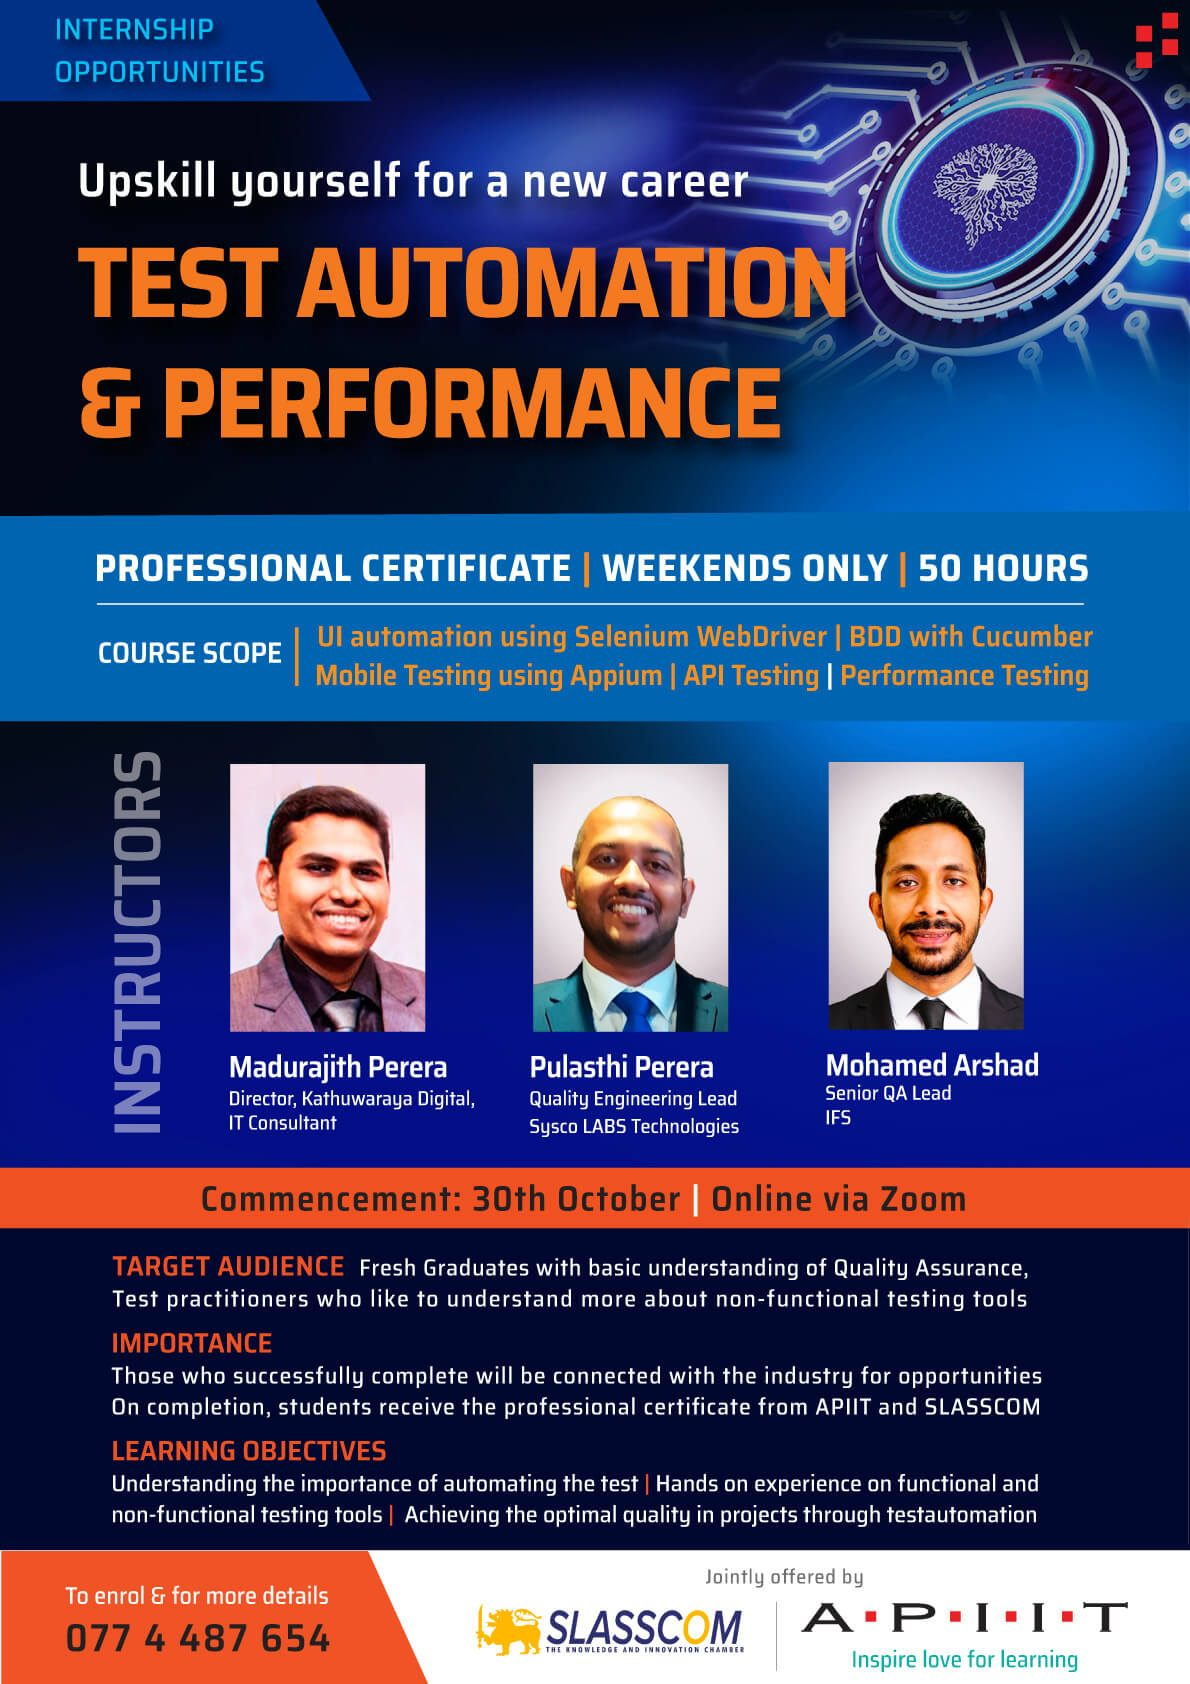 Get Test Automation Certification and Start A New Carrier!